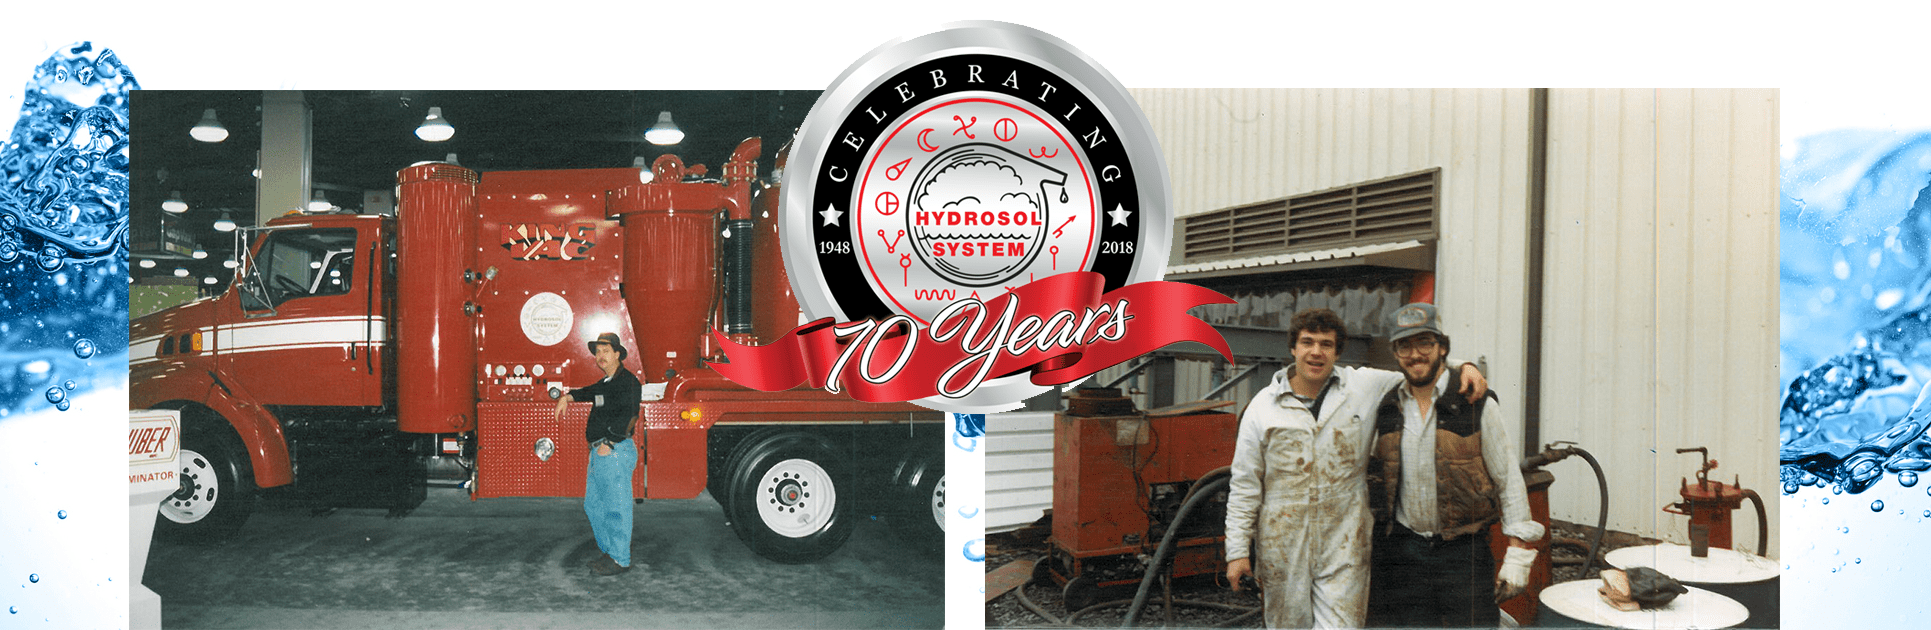 Hydrosol is Celebrating 70 Years!